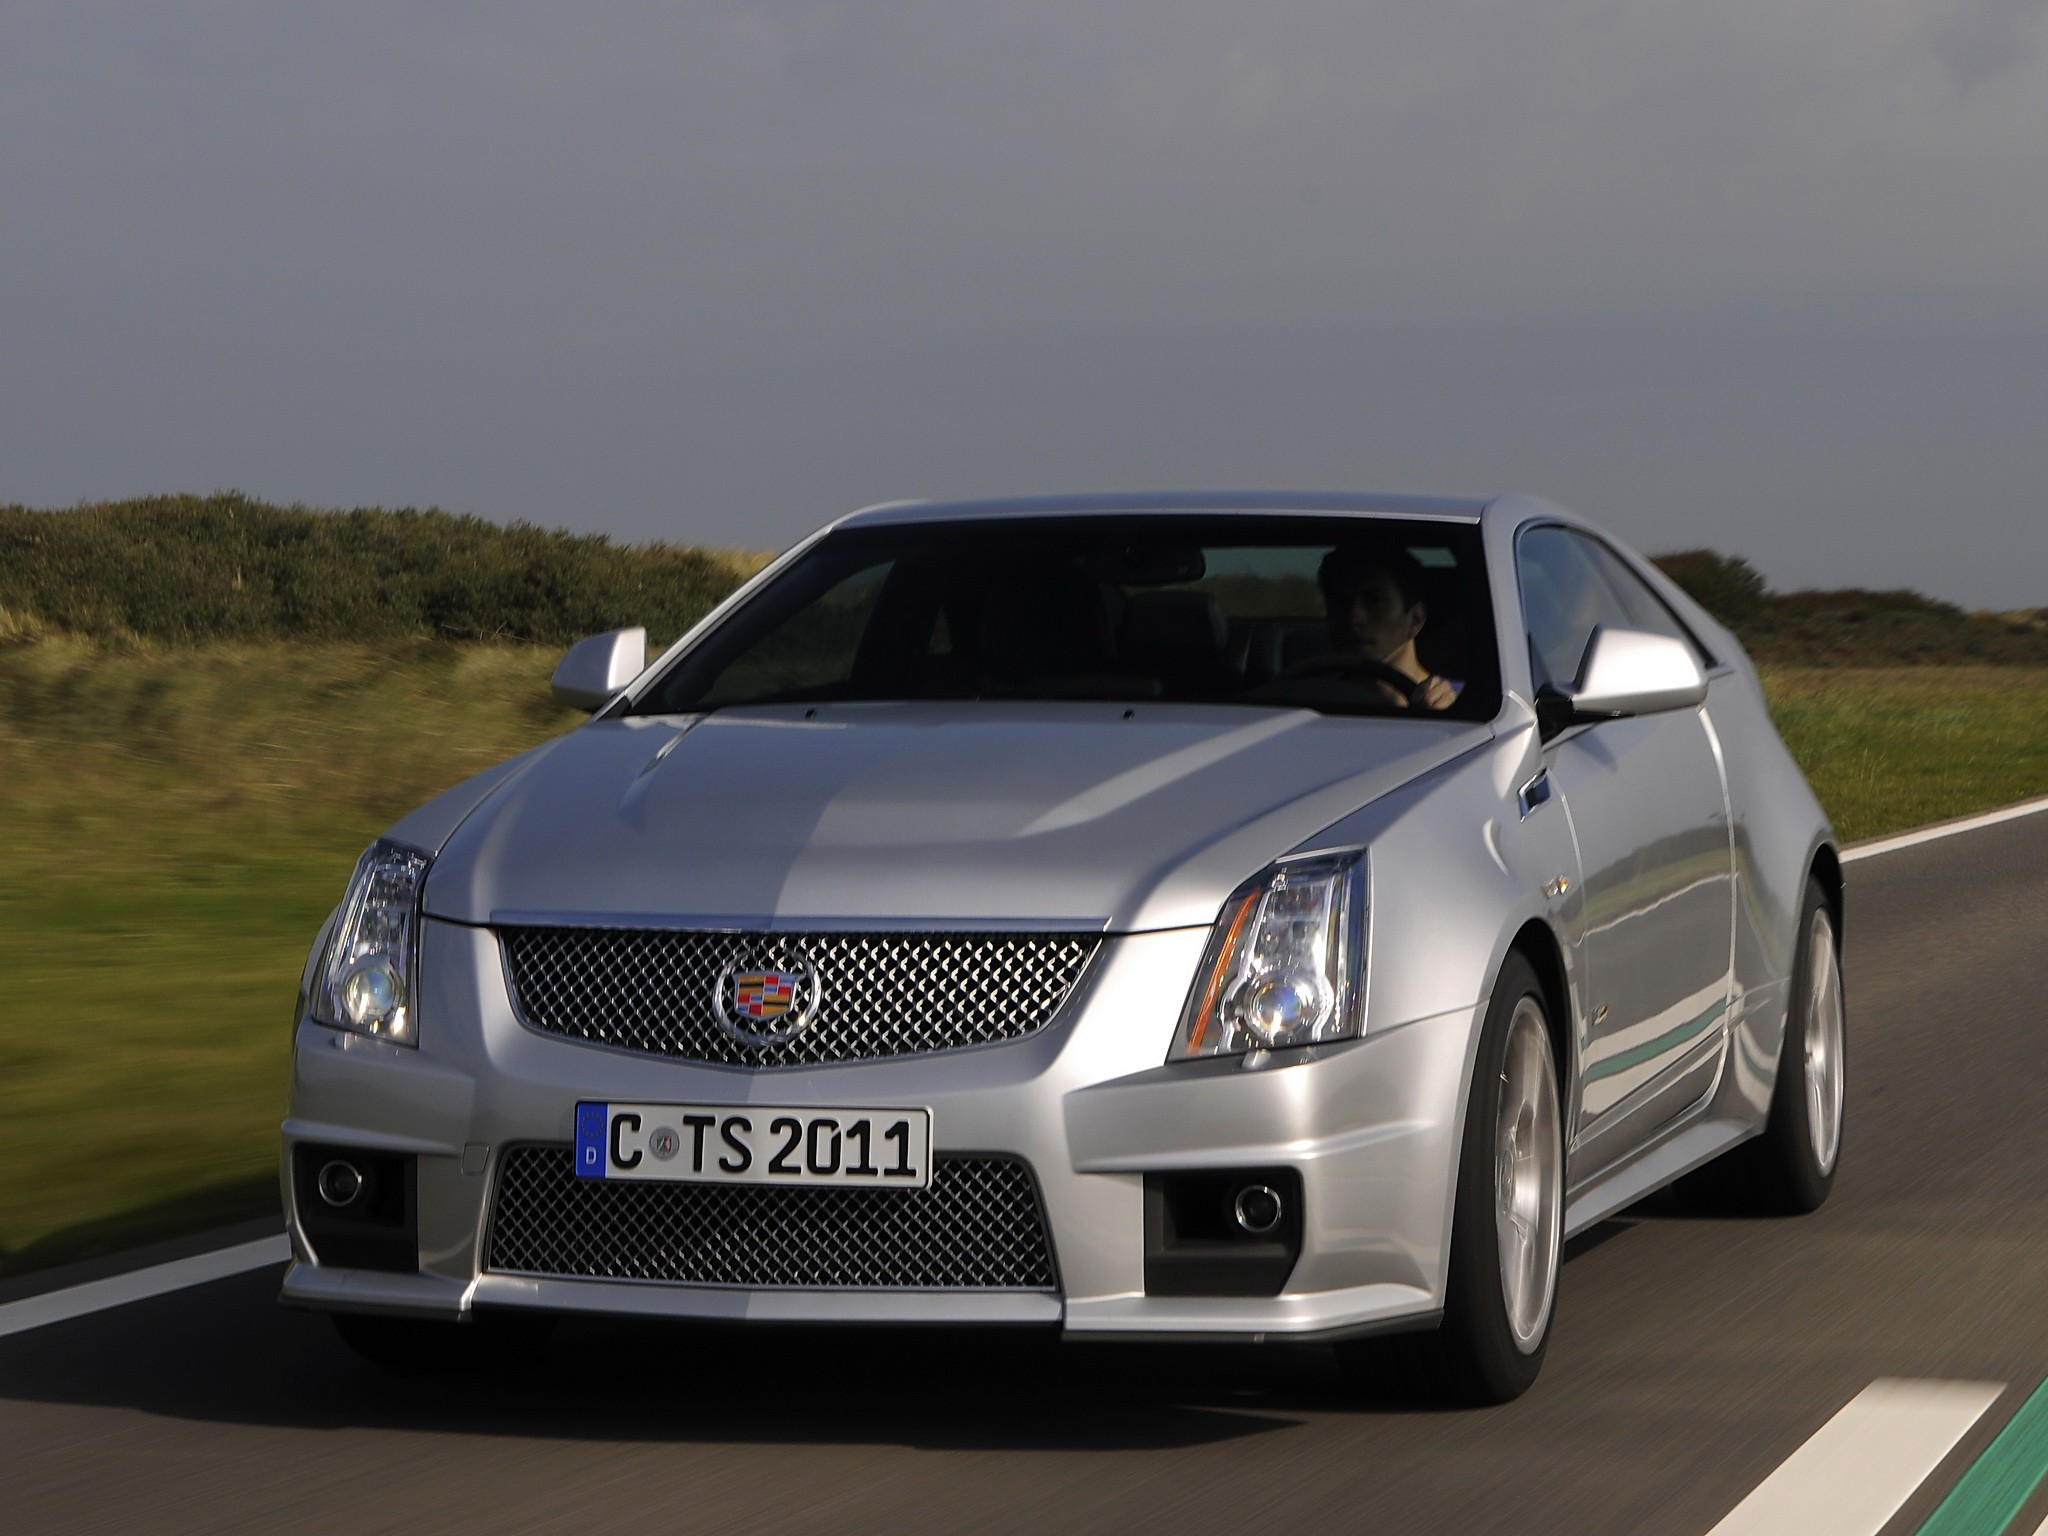 cts coupe cars cadillac present specs